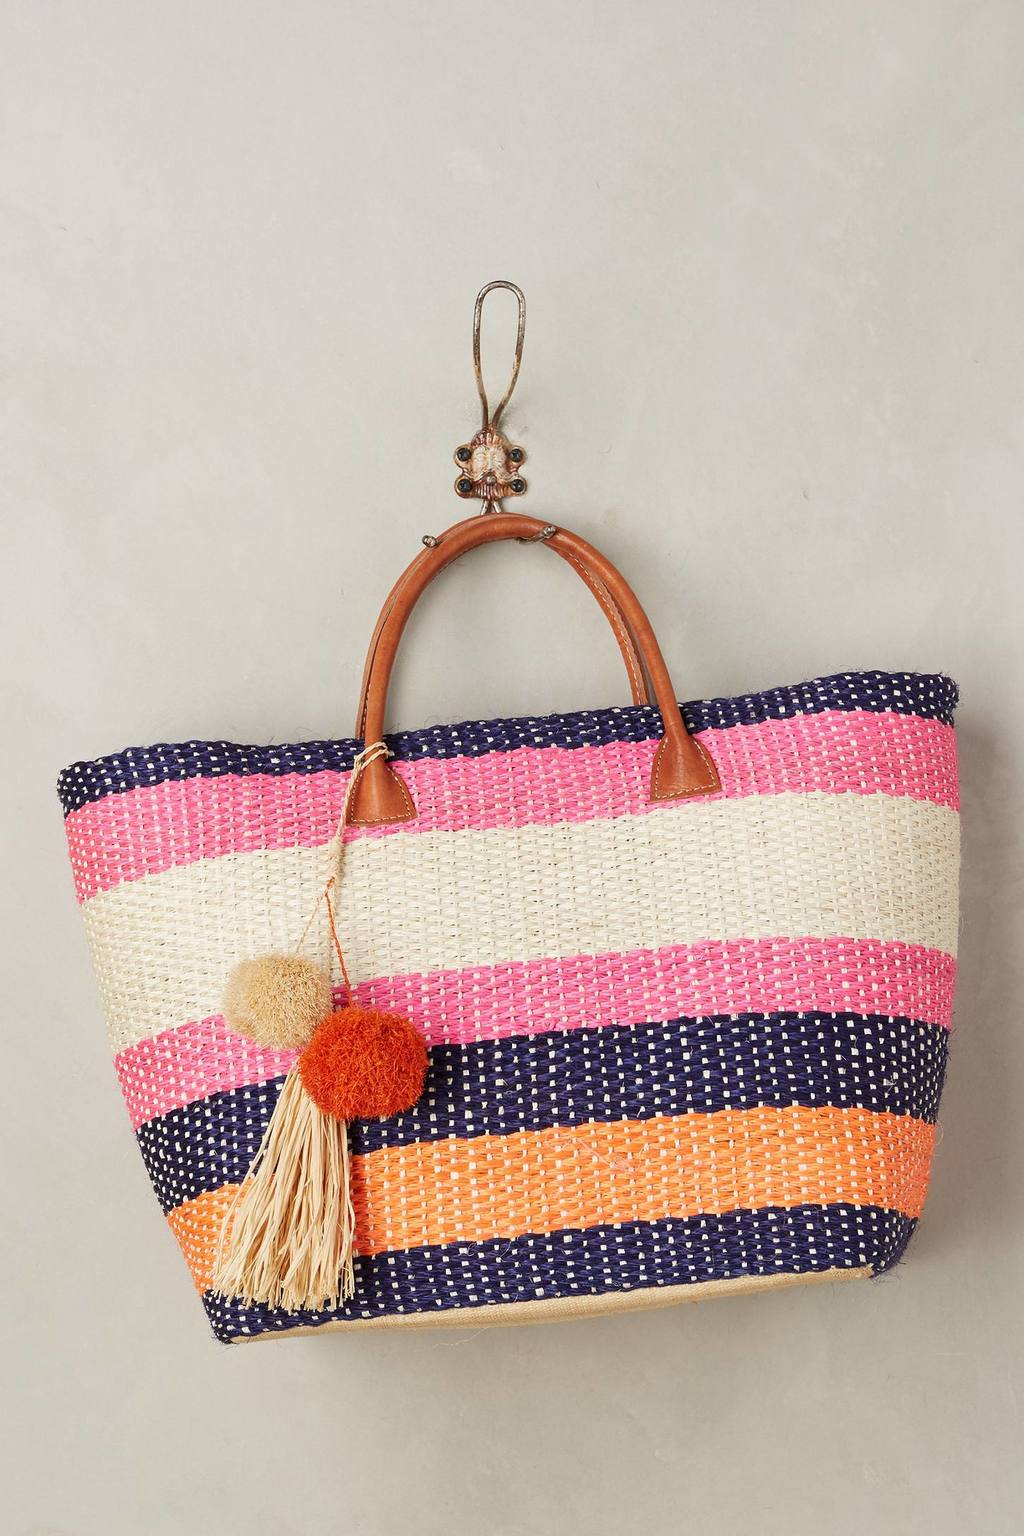 Pomaria Striped Tote Bag - secondary colour: hot pink; predominant colour: navy; occasions: casual, holiday; type of pattern: heavy; style: tote; length: hand carry; size: standard; material: macrame/raffia/straw; finish: plain; pattern: horizontal stripes; multicoloured: multicoloured; season: s/s 2016; wardrobe: highlight